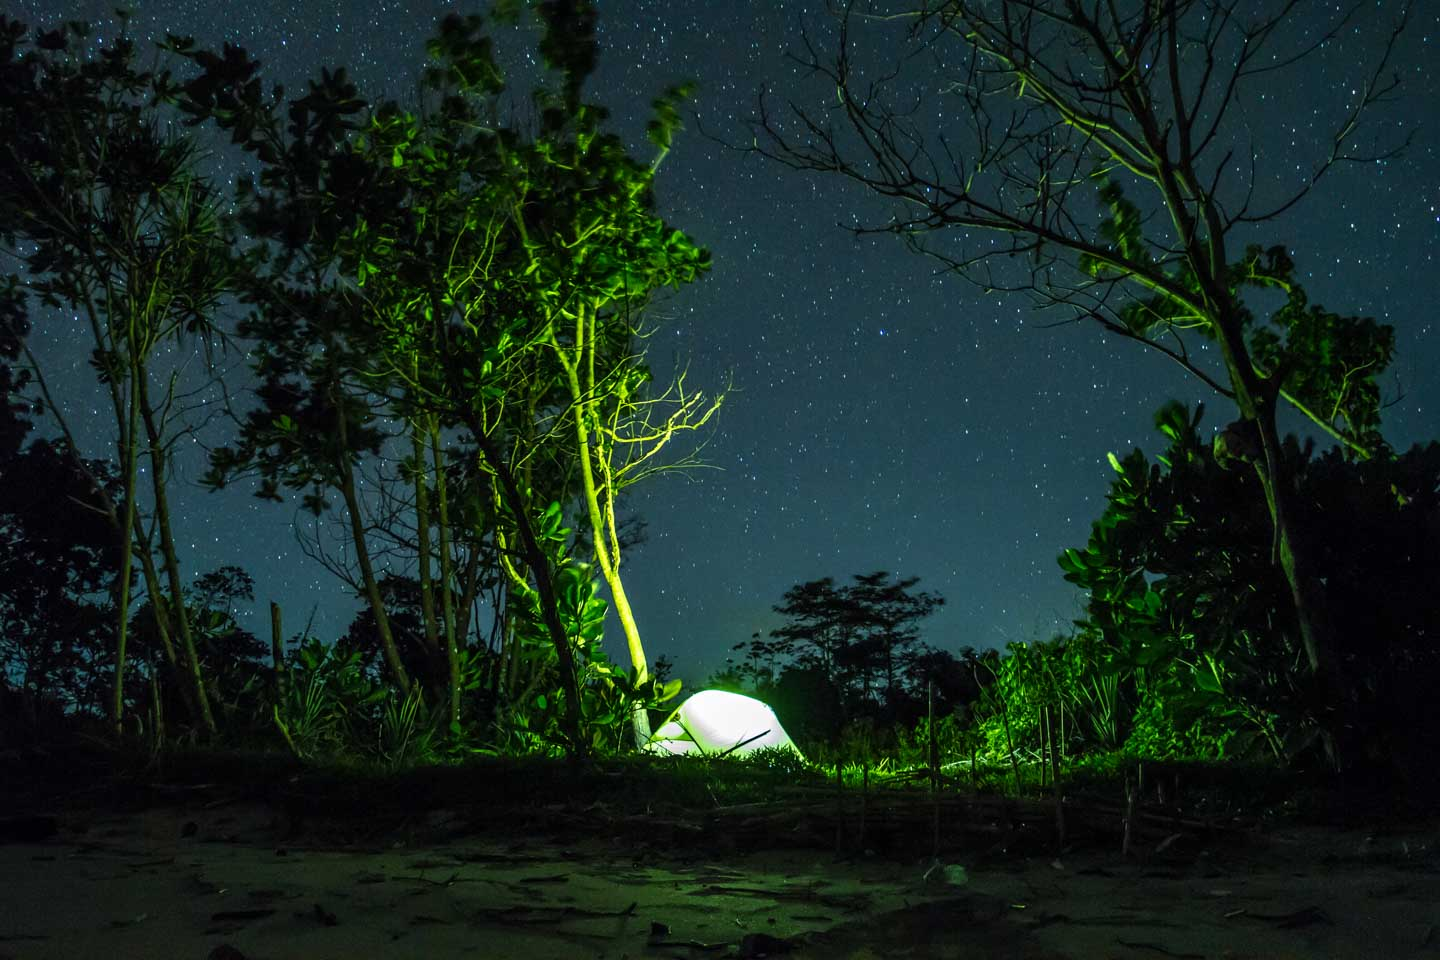 Camping with tent at night at Nusa Kambangan Java Indonesia